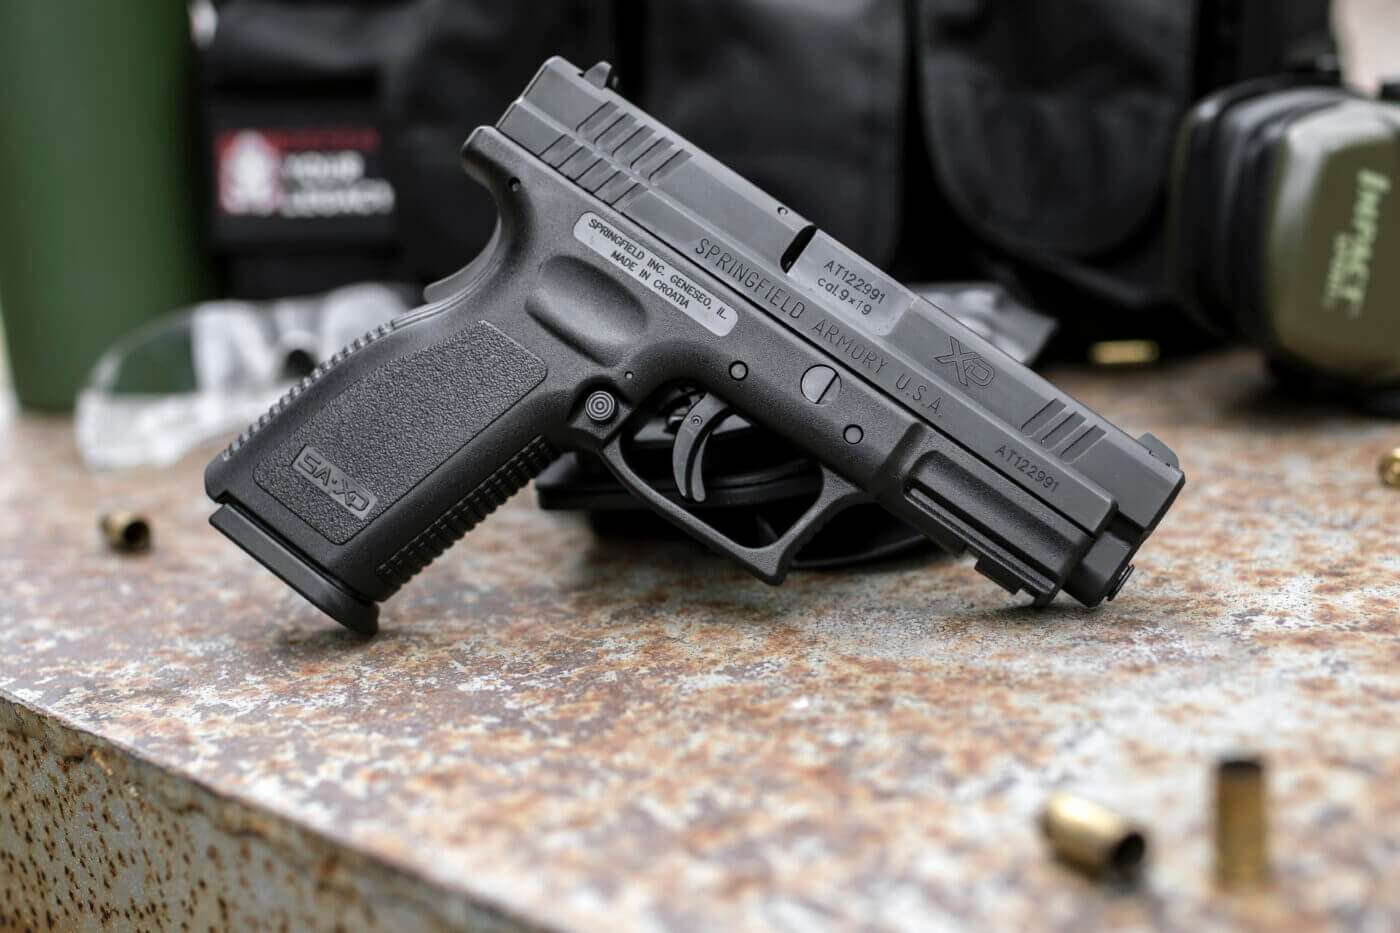 Reviewing the Springfield Armory XD 9mm pistol